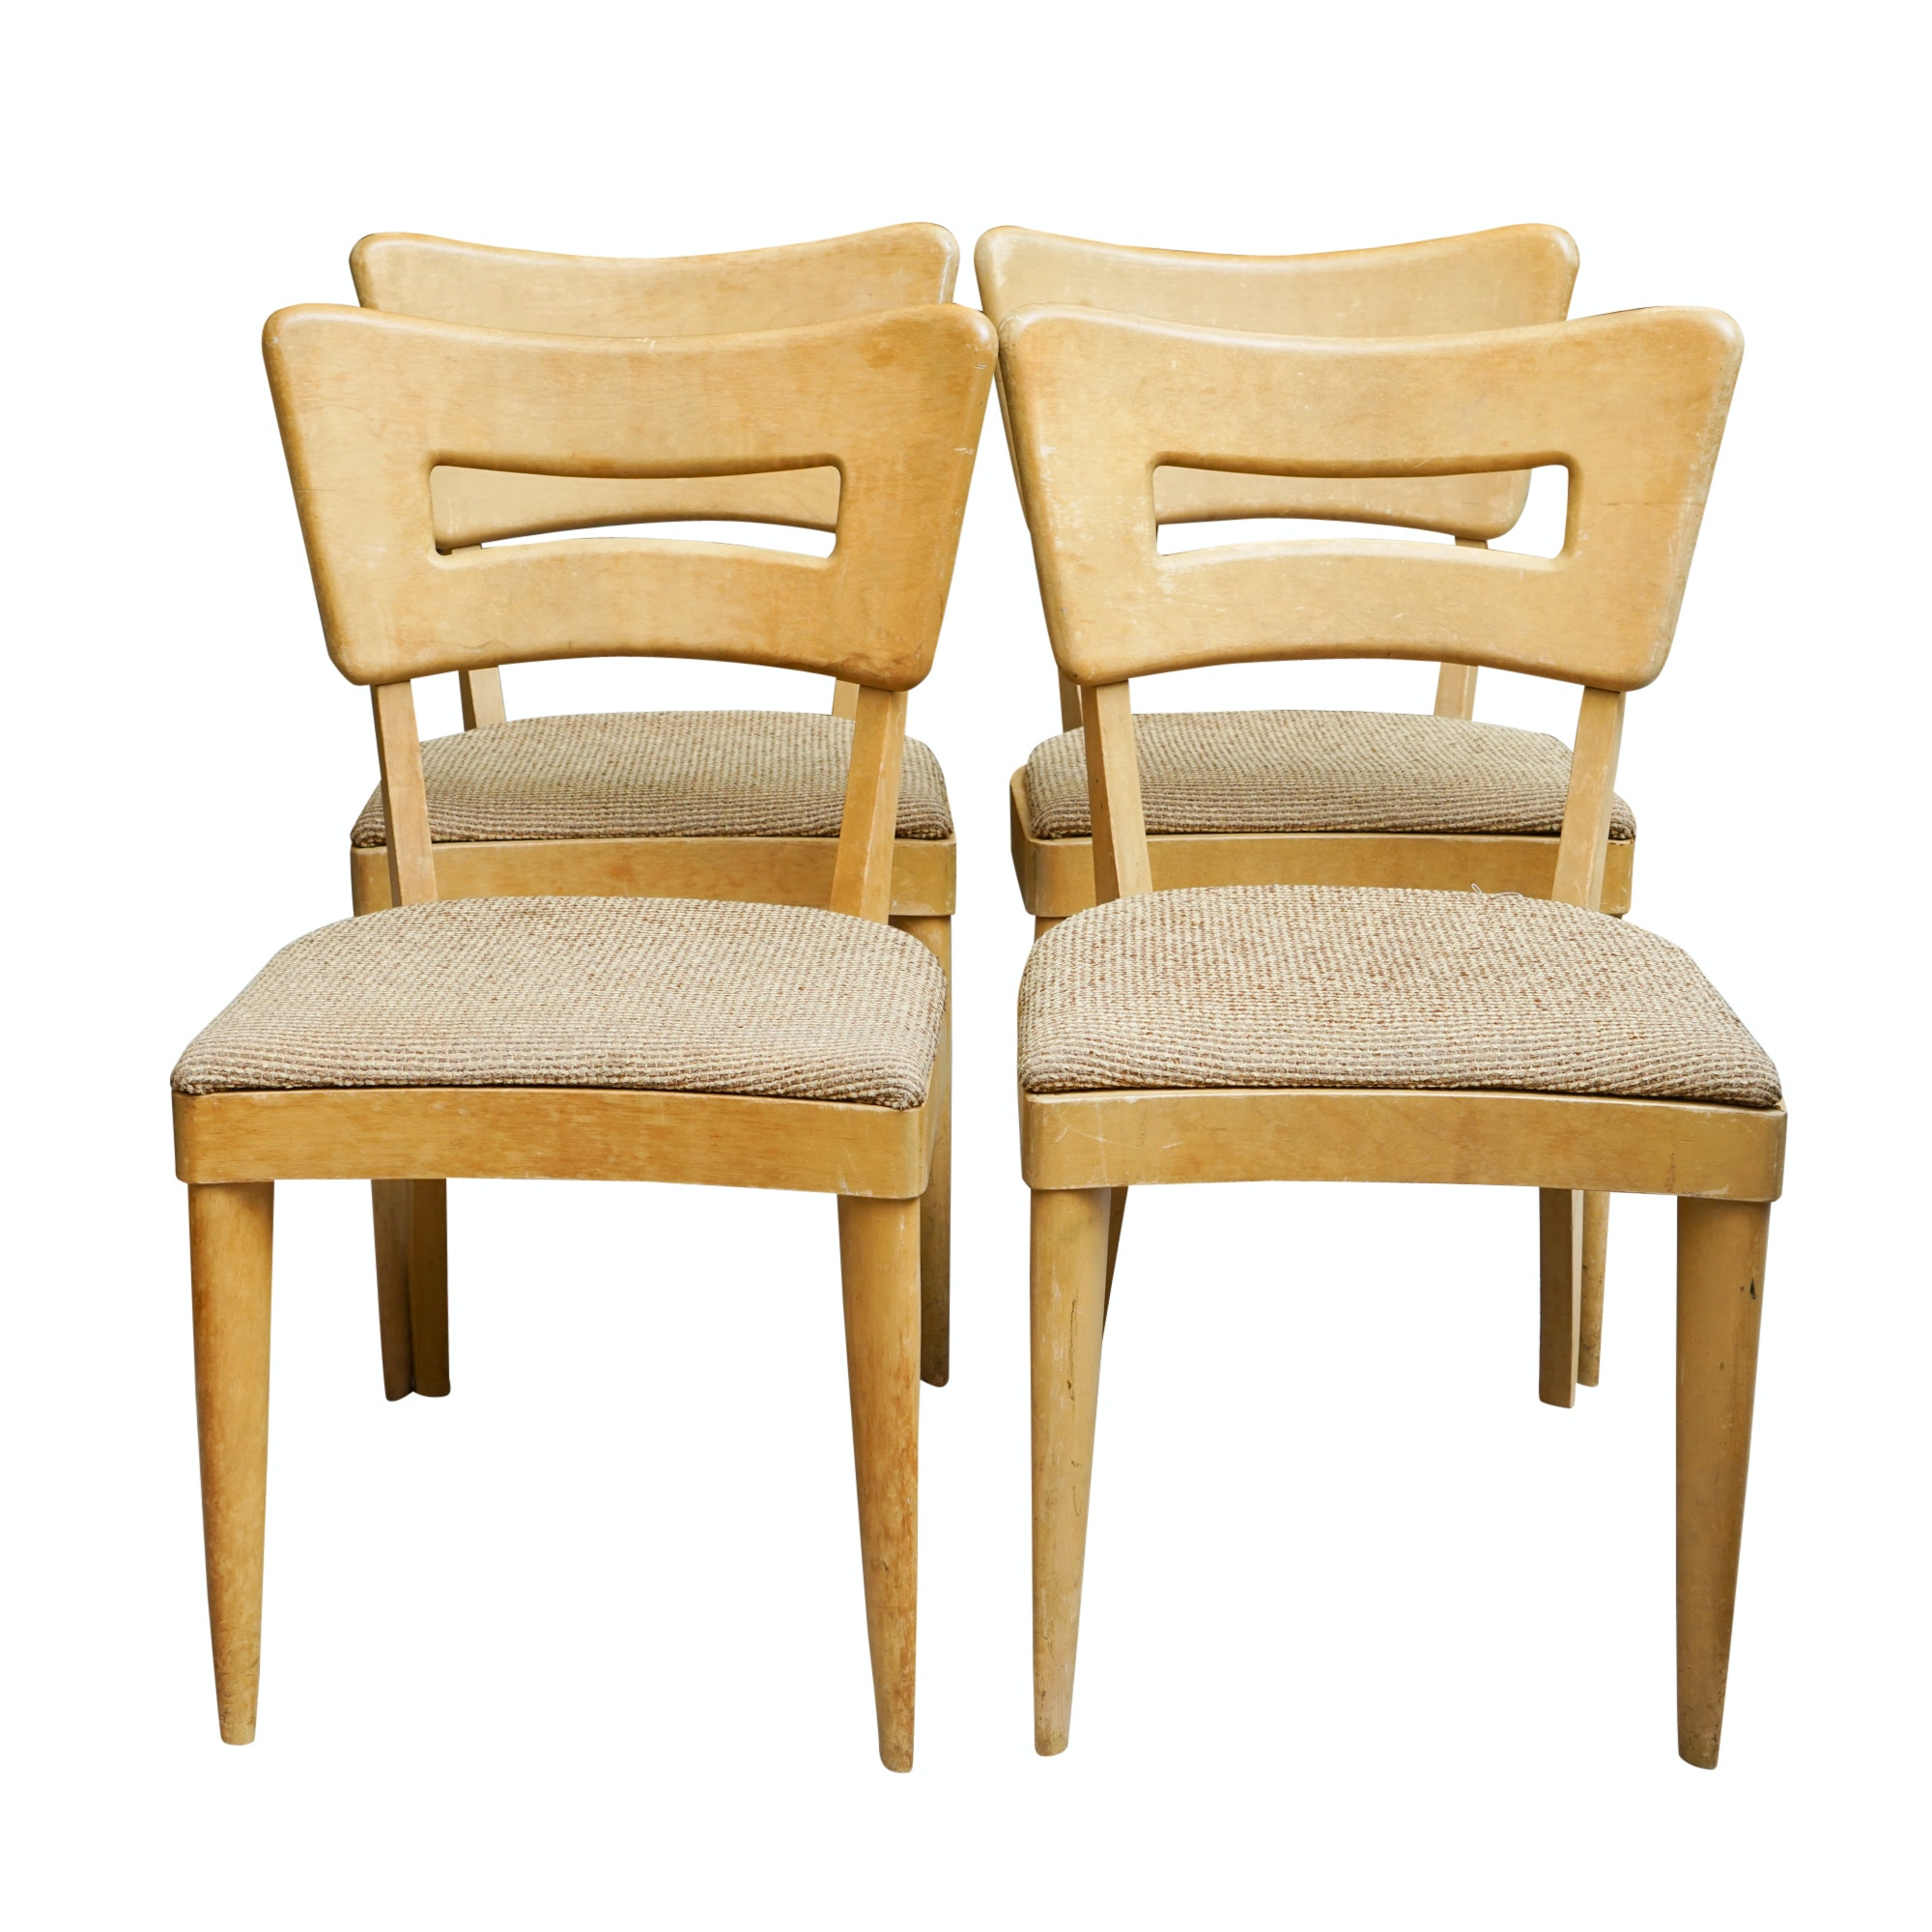 "Mid Century Modern ""Dog Biscuit"" Side Chairs by Heywood-Wakefield"